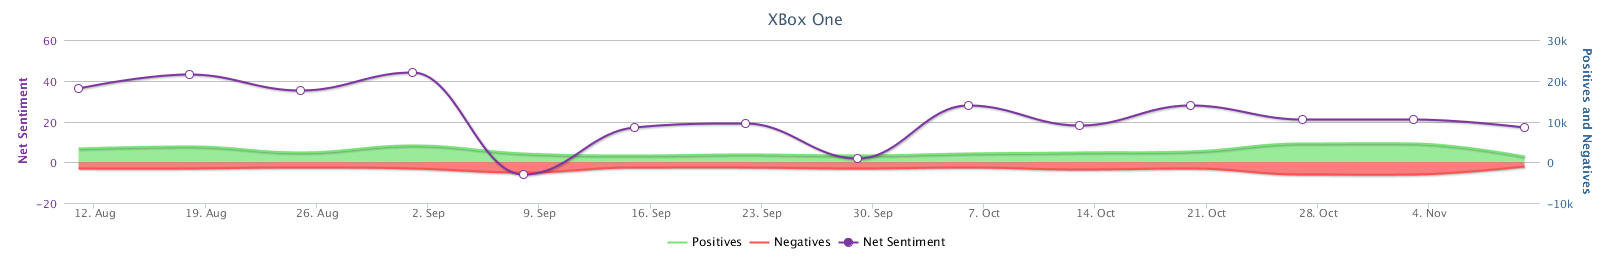 Timeline_XBox One.png